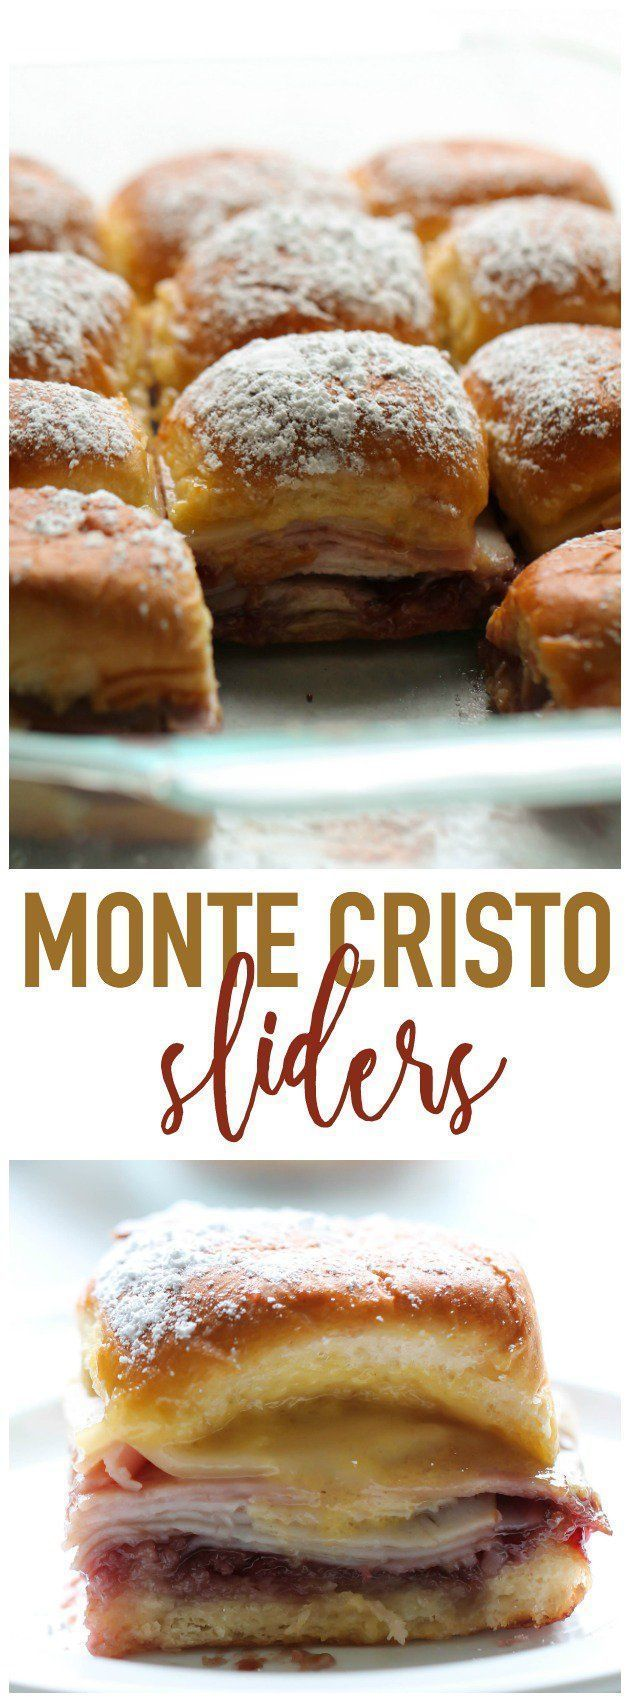 Monte Cristo Sliders from SixSistersStuff.com | This is one of the BEST sandwich recipes and so easy to make for lunch or game day snack!